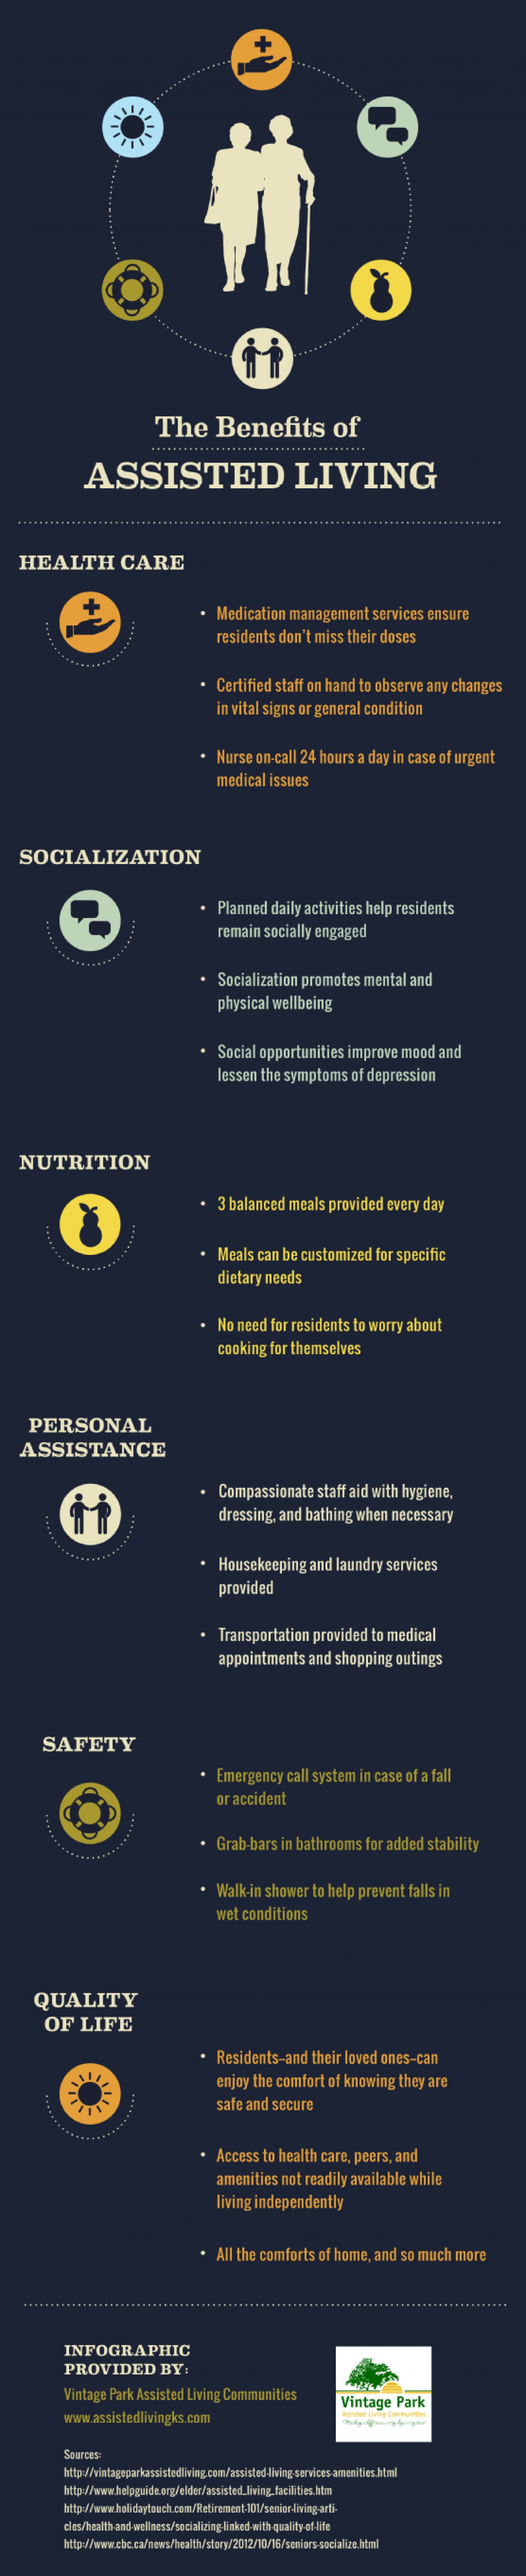 The Benefits of Assisted Living Infographic